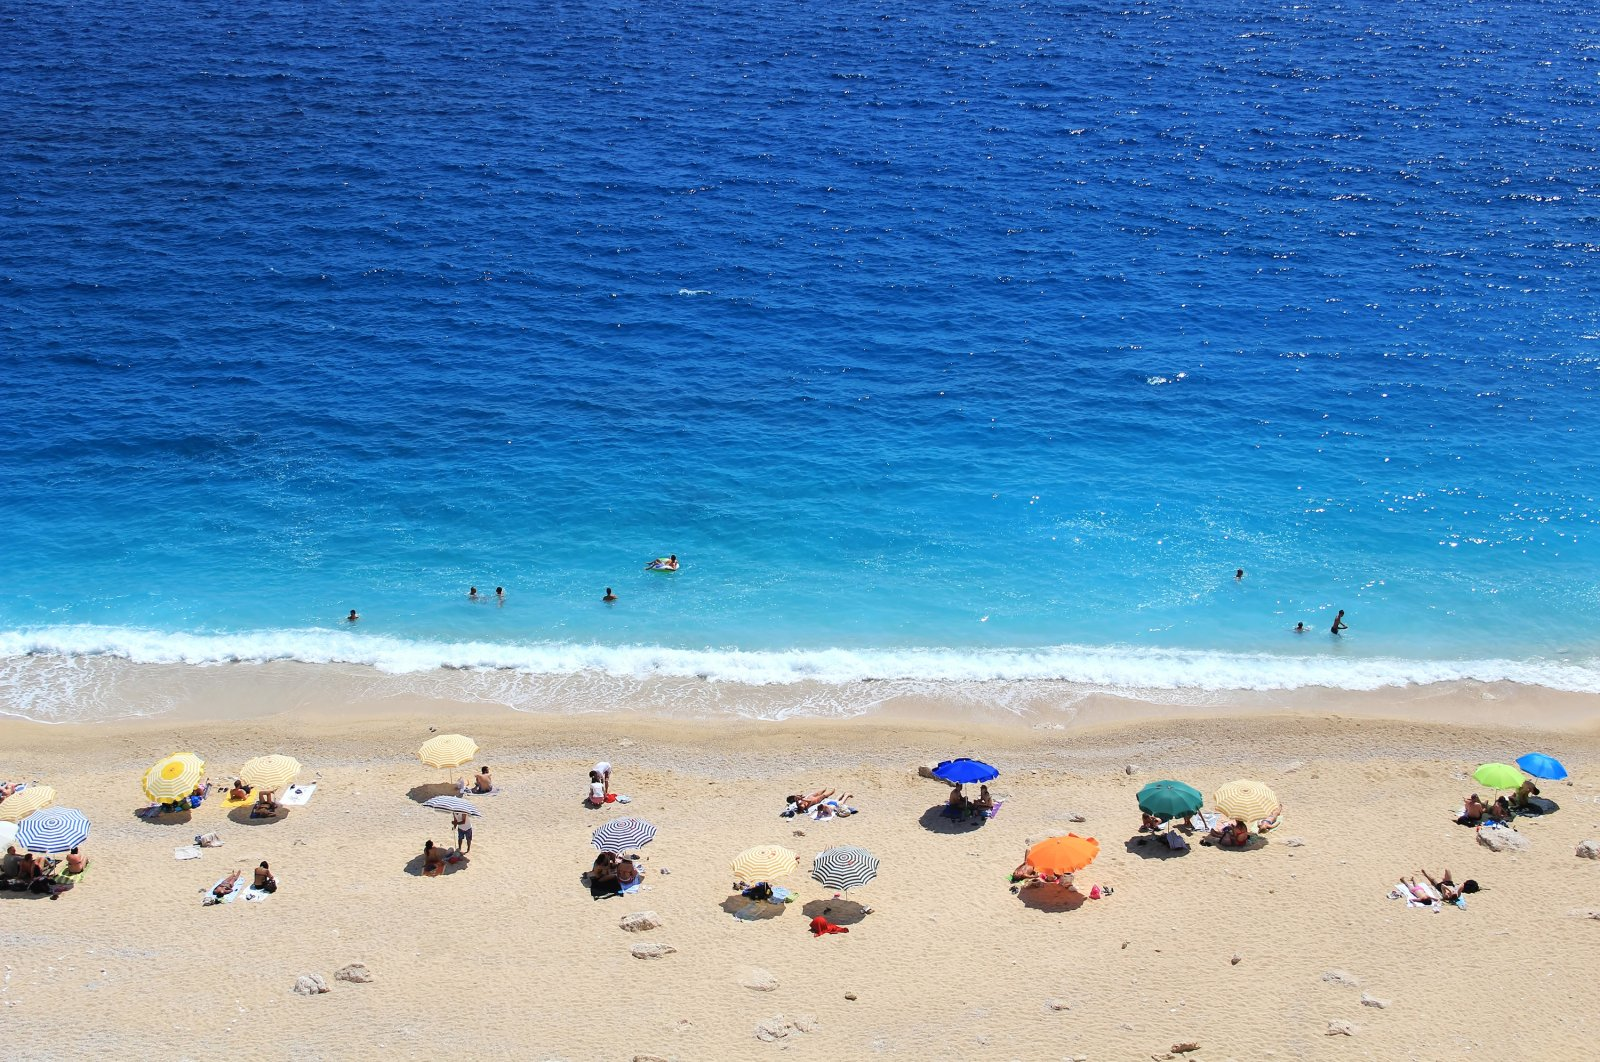 People relax at the Kaputaş beach in Antalya, southern Turkey, in this undated photo. (Shutterstock Photo)